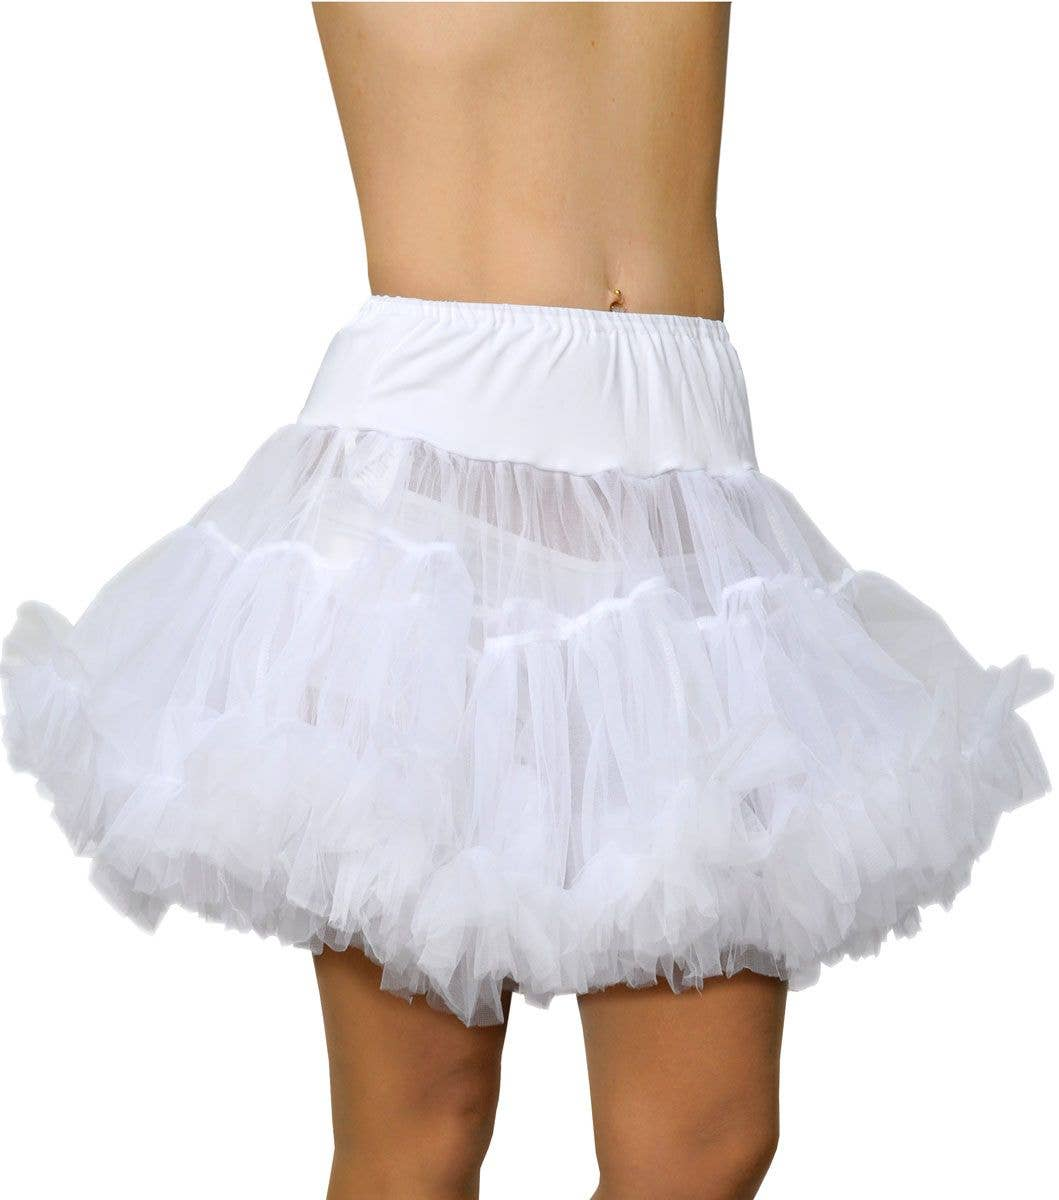 Fantasy Thigh Length White Fluffy Petticoat